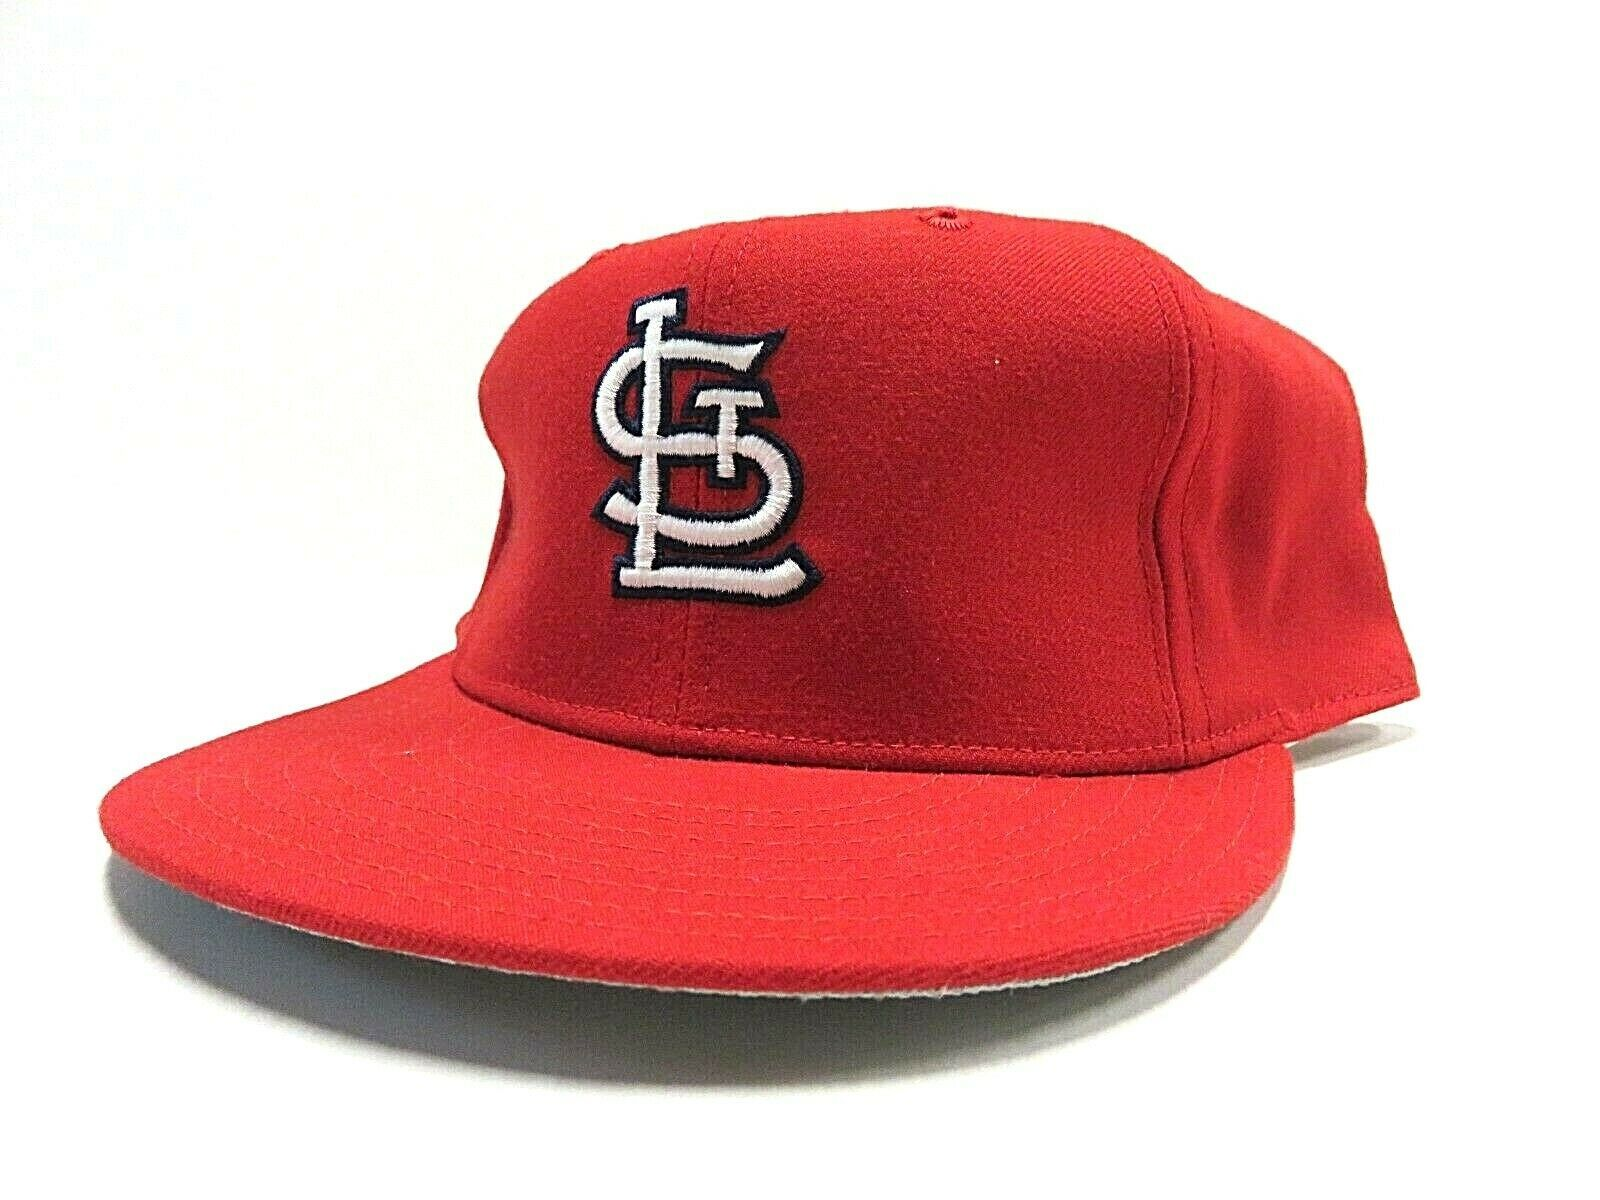 VTG New Era St.Louis Cardinals MLB Baseball Fitted Hat Adult Size 7 3/4 USA Made